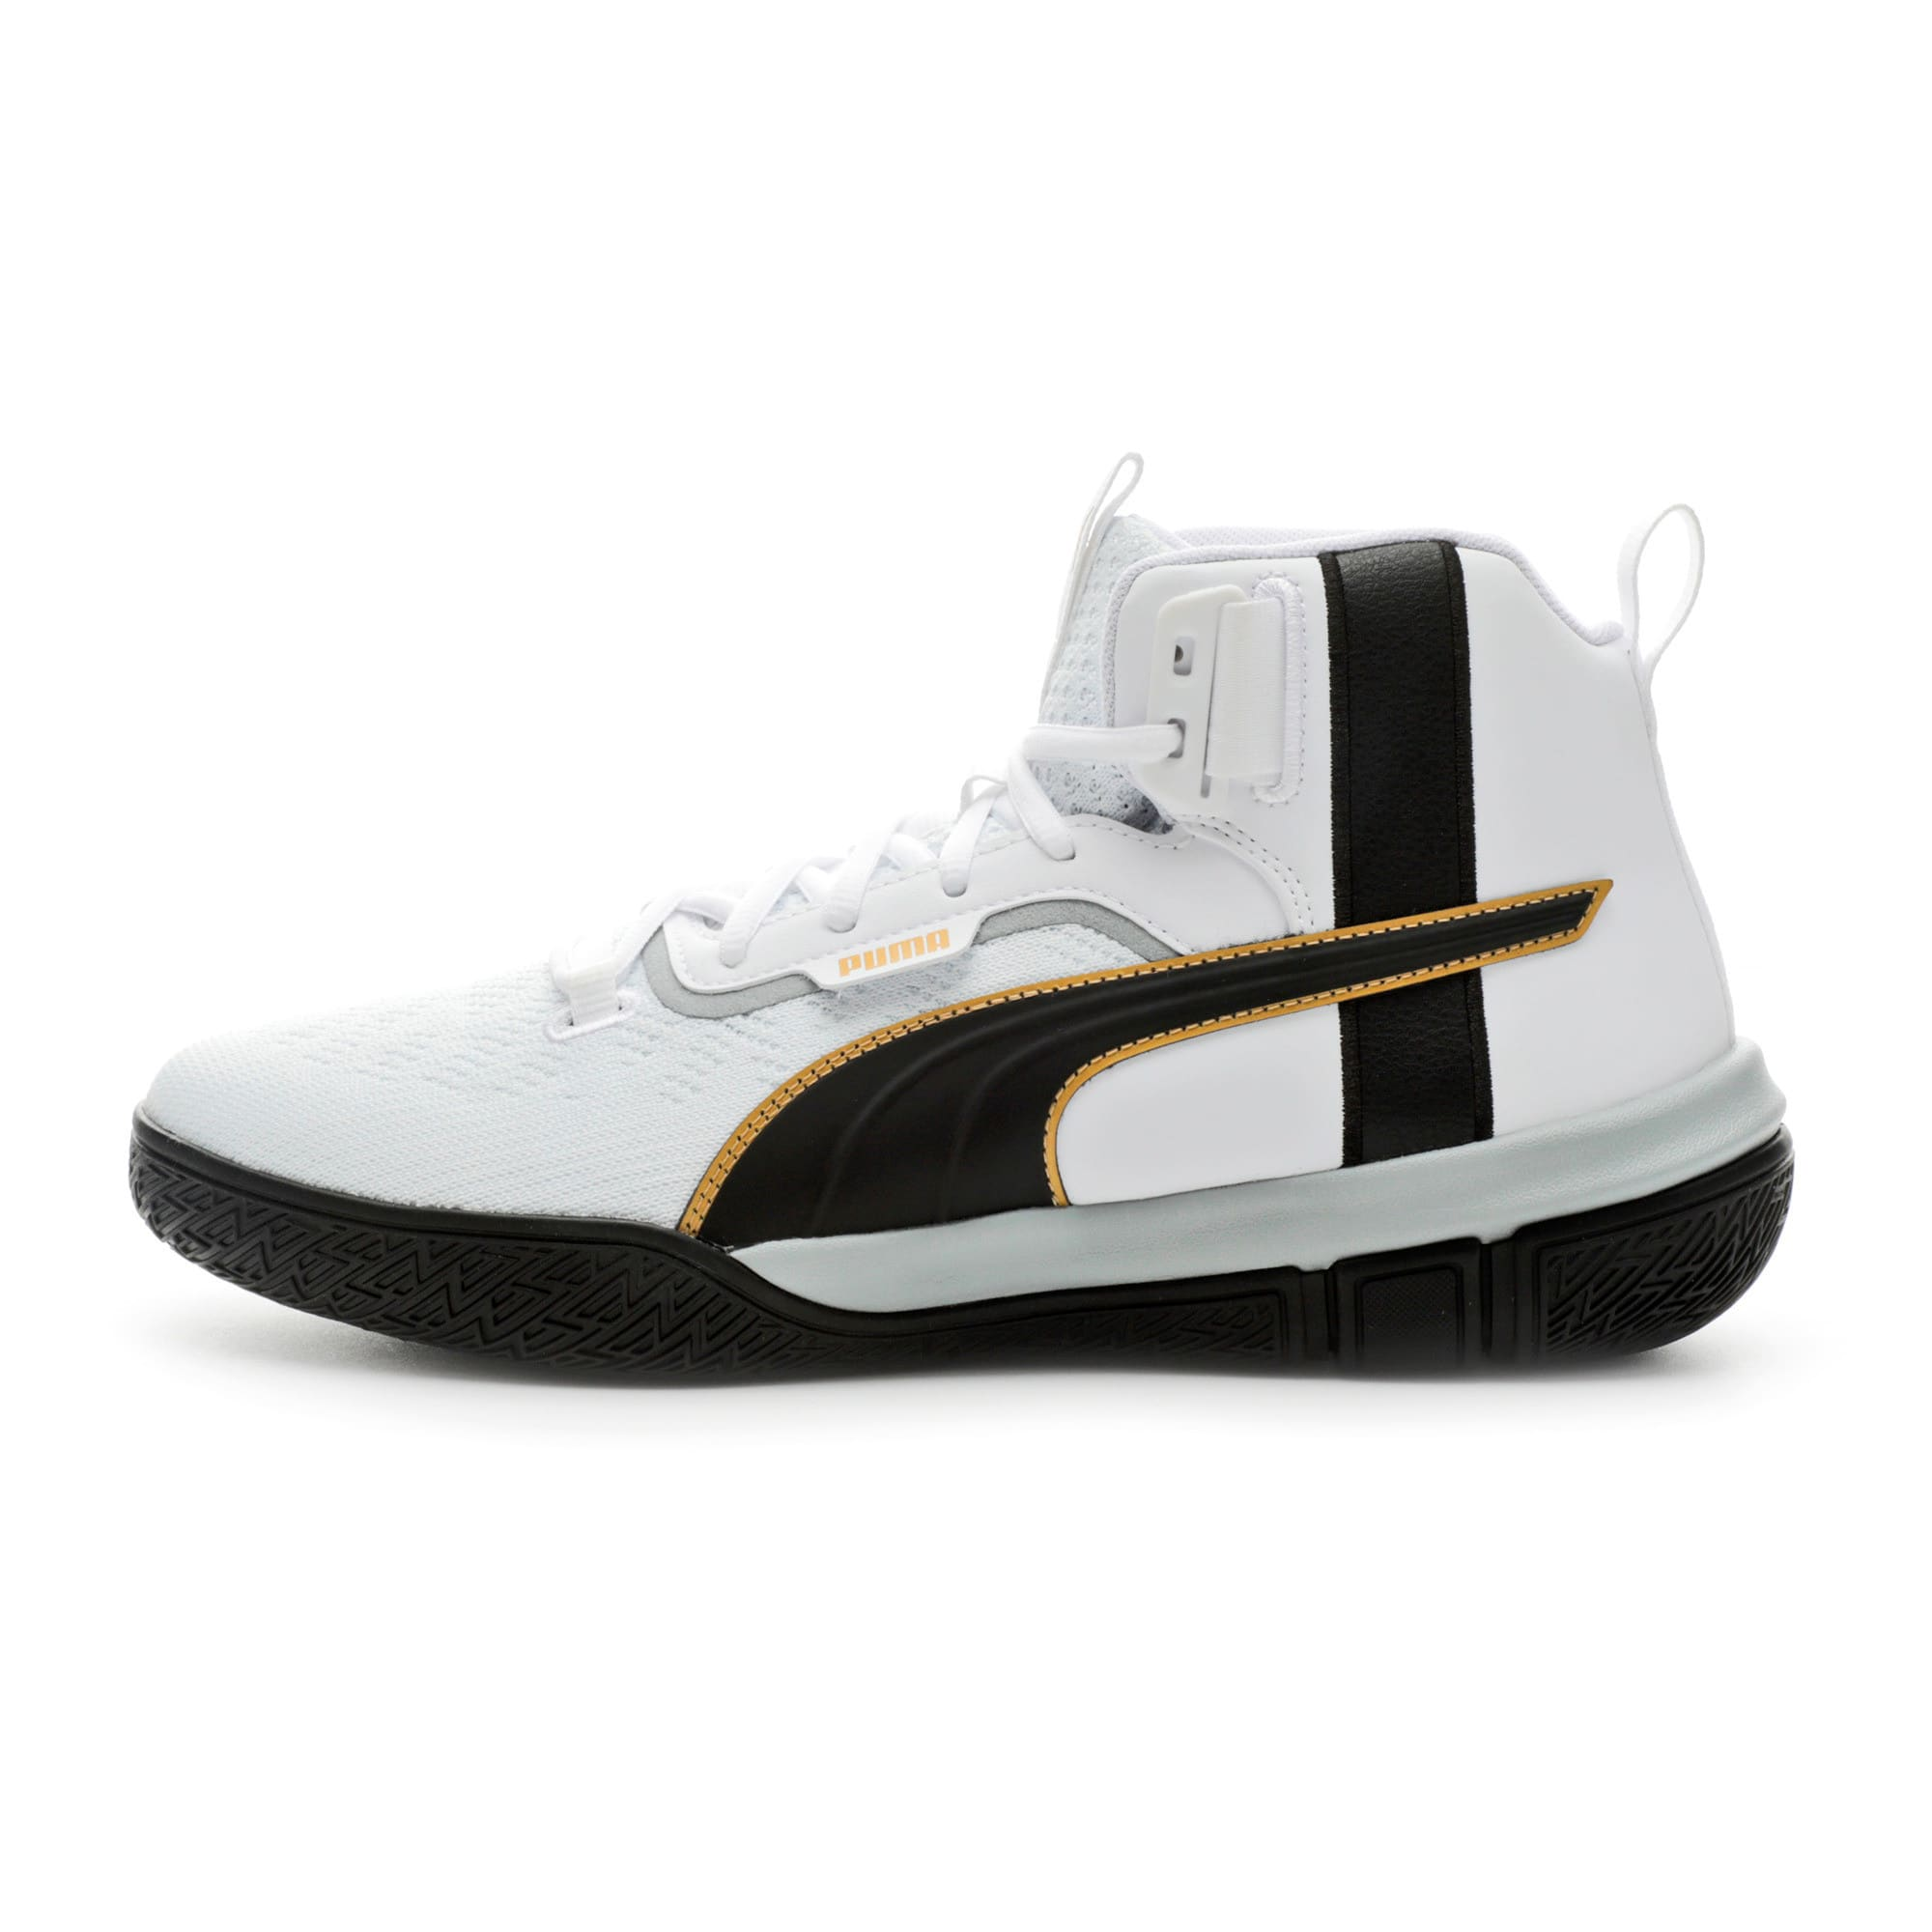 Thumbnail 1 of Legacy '68 Basketball Shoes, Puma Black-Puma White, medium